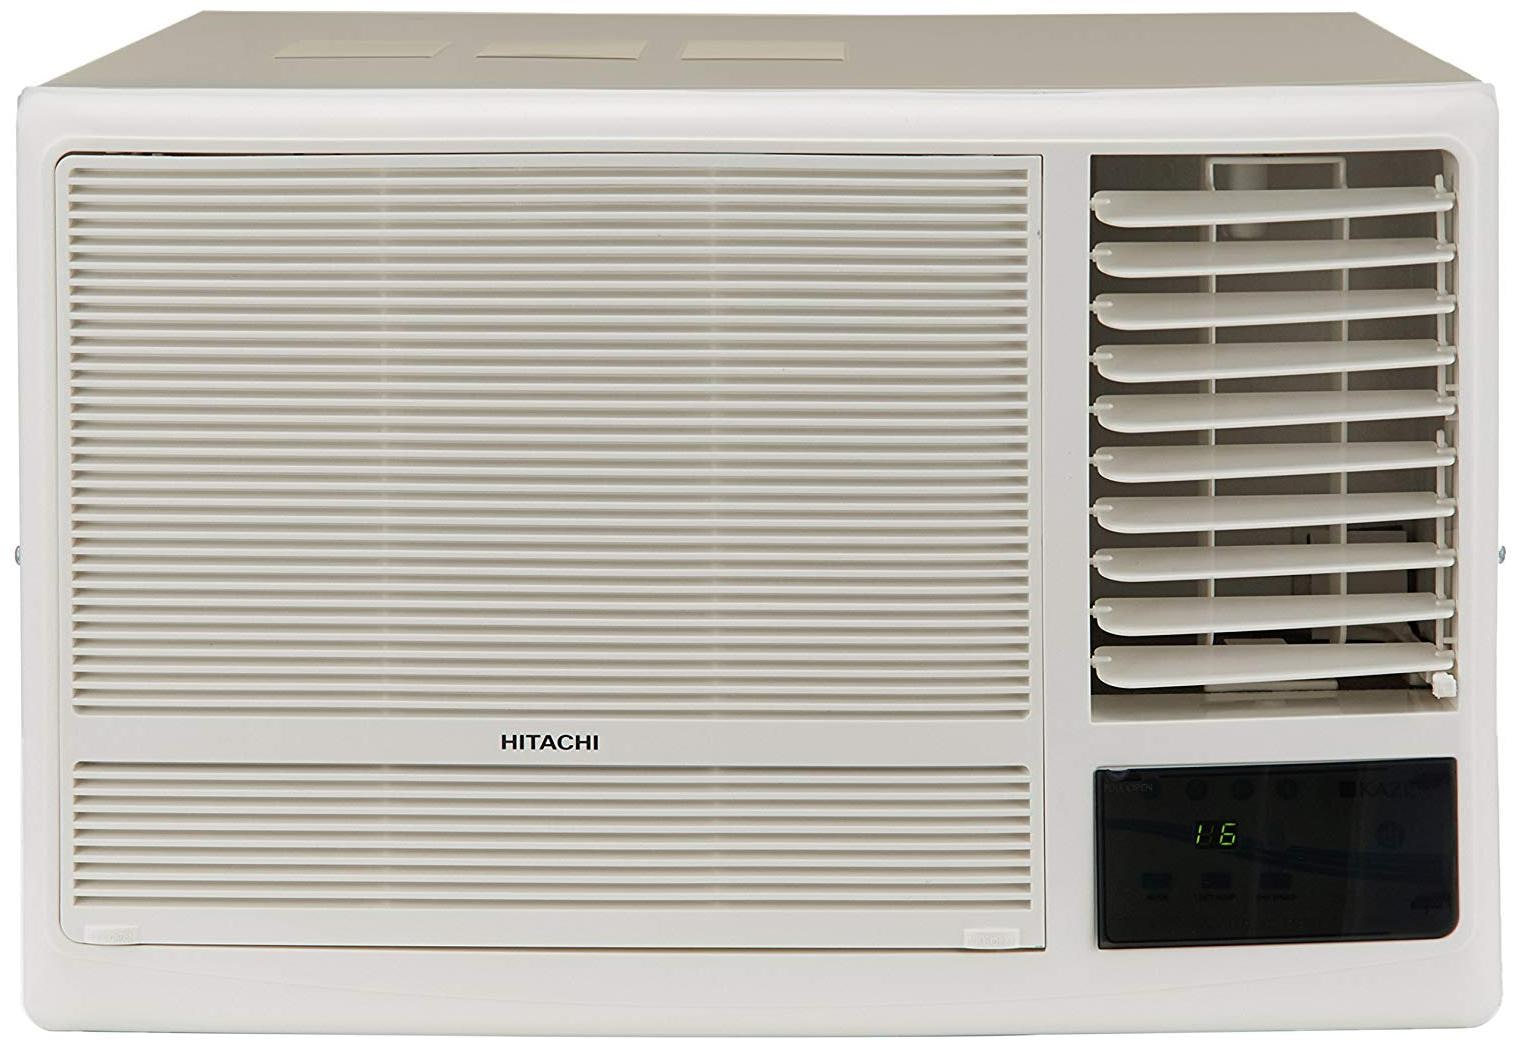 Hitachi 1.5 Ton 5 Star Window AC  RAW518KUD/DZ1, White  with Copper Condenser